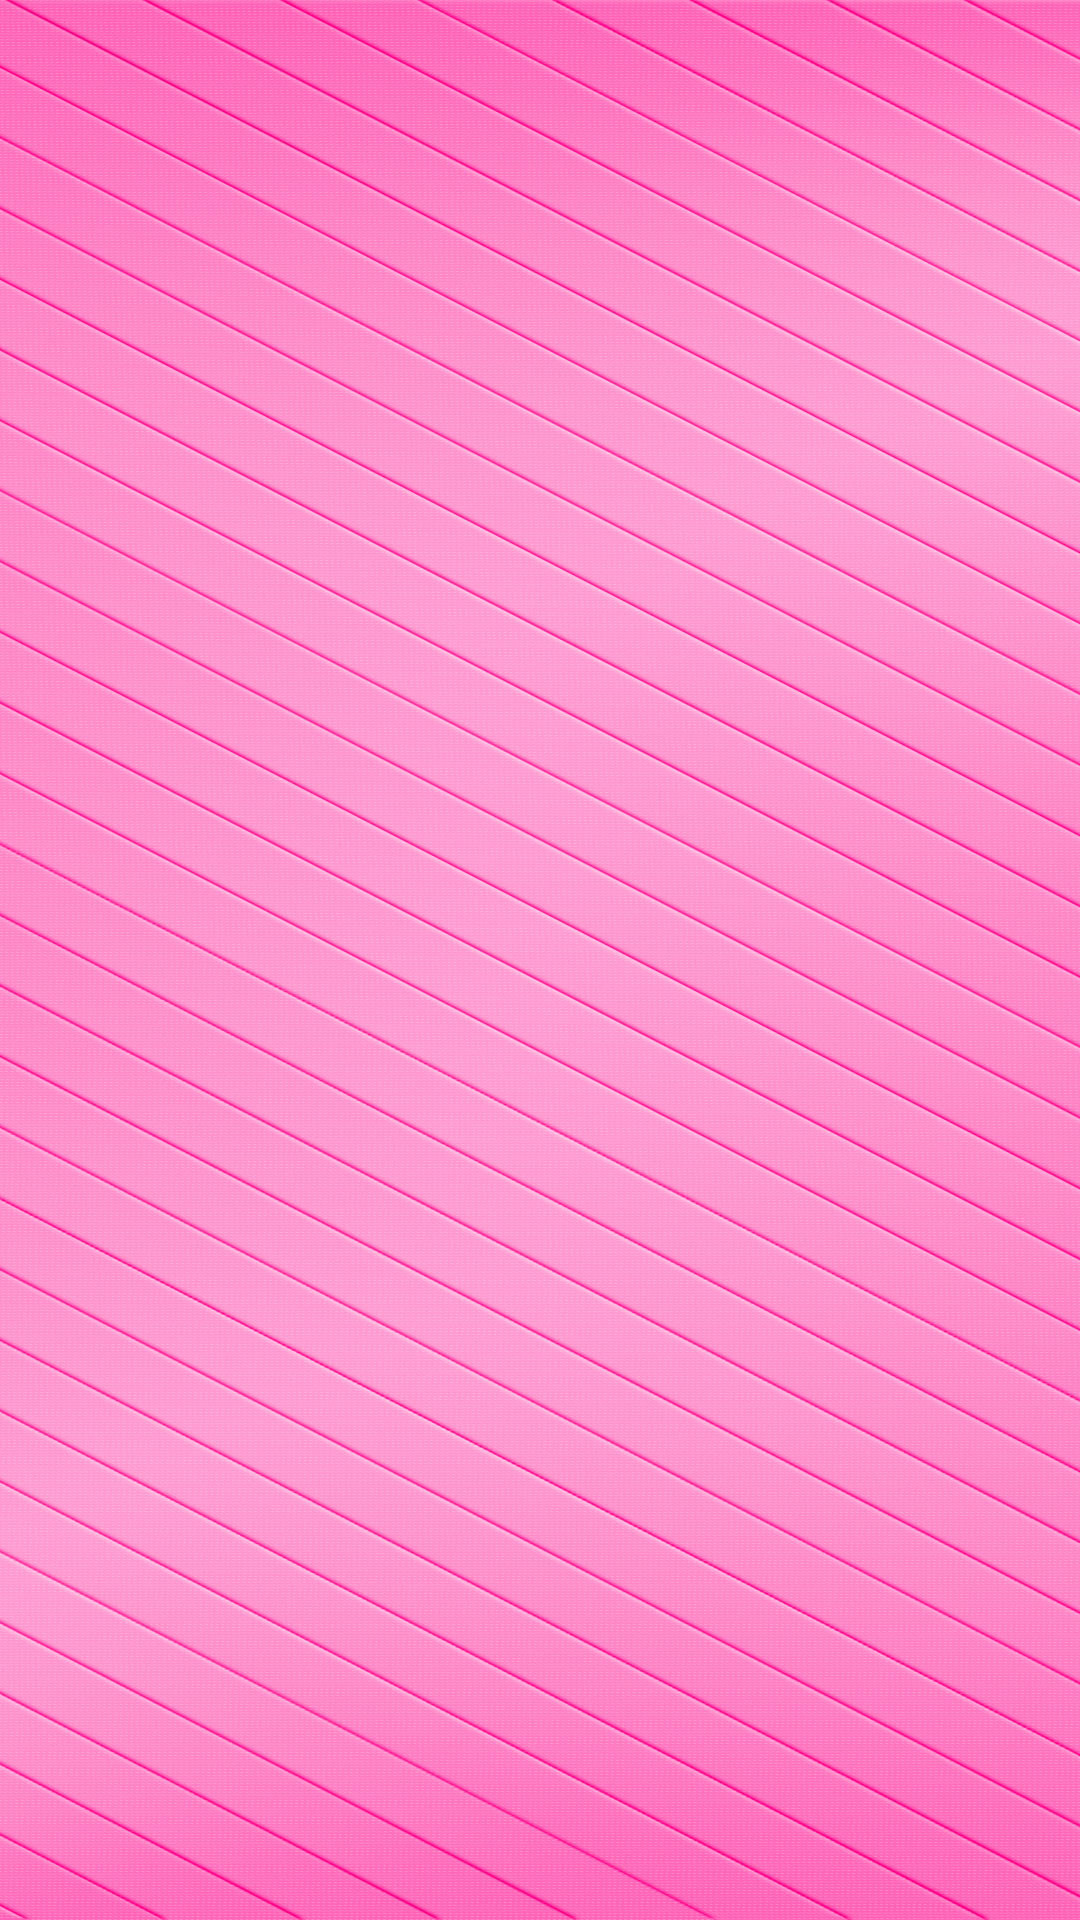 Pink iPhone 6 Plus background for girls